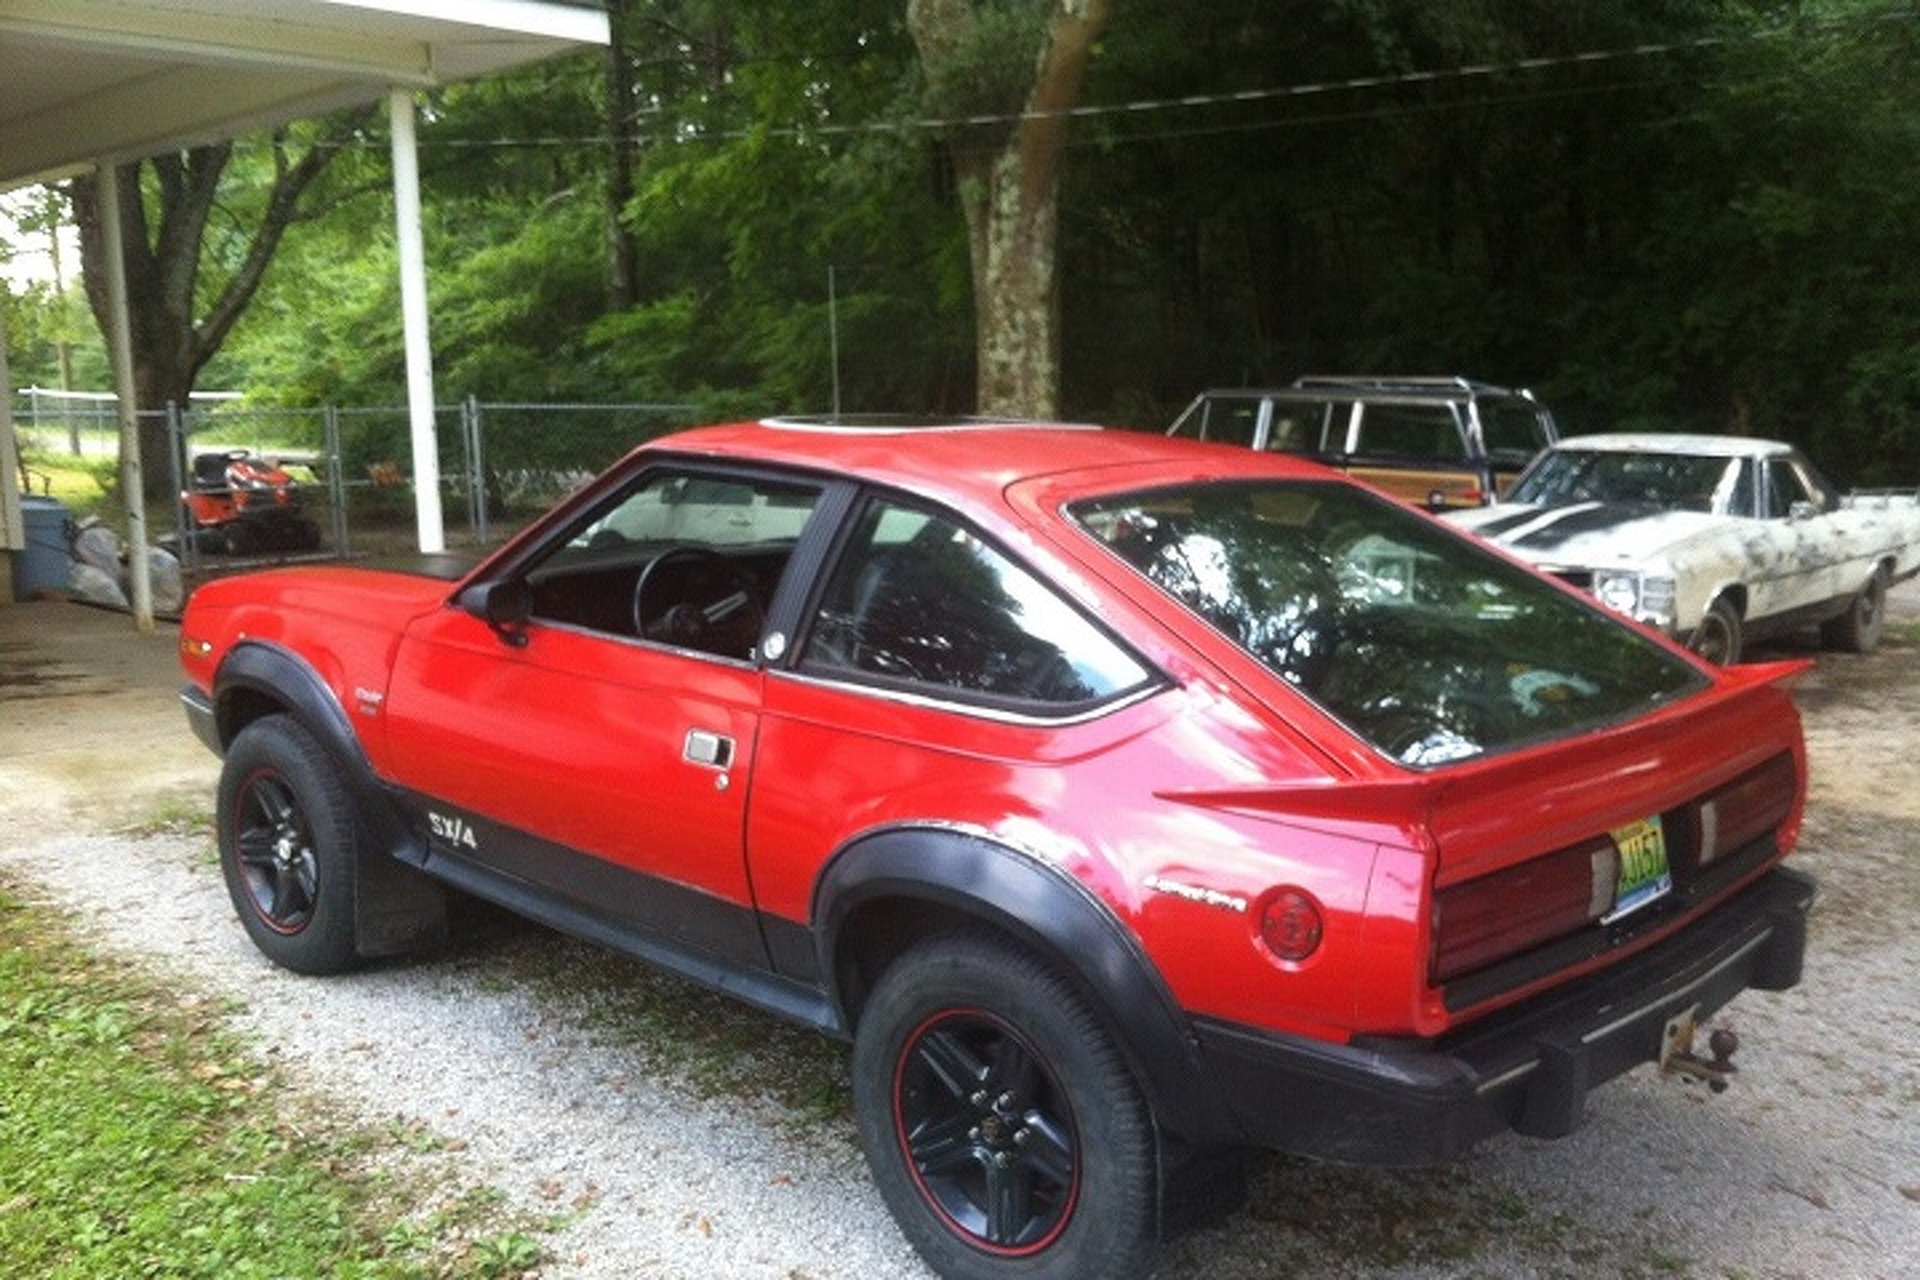 Buy the Original Crossover: The AMC SX/4